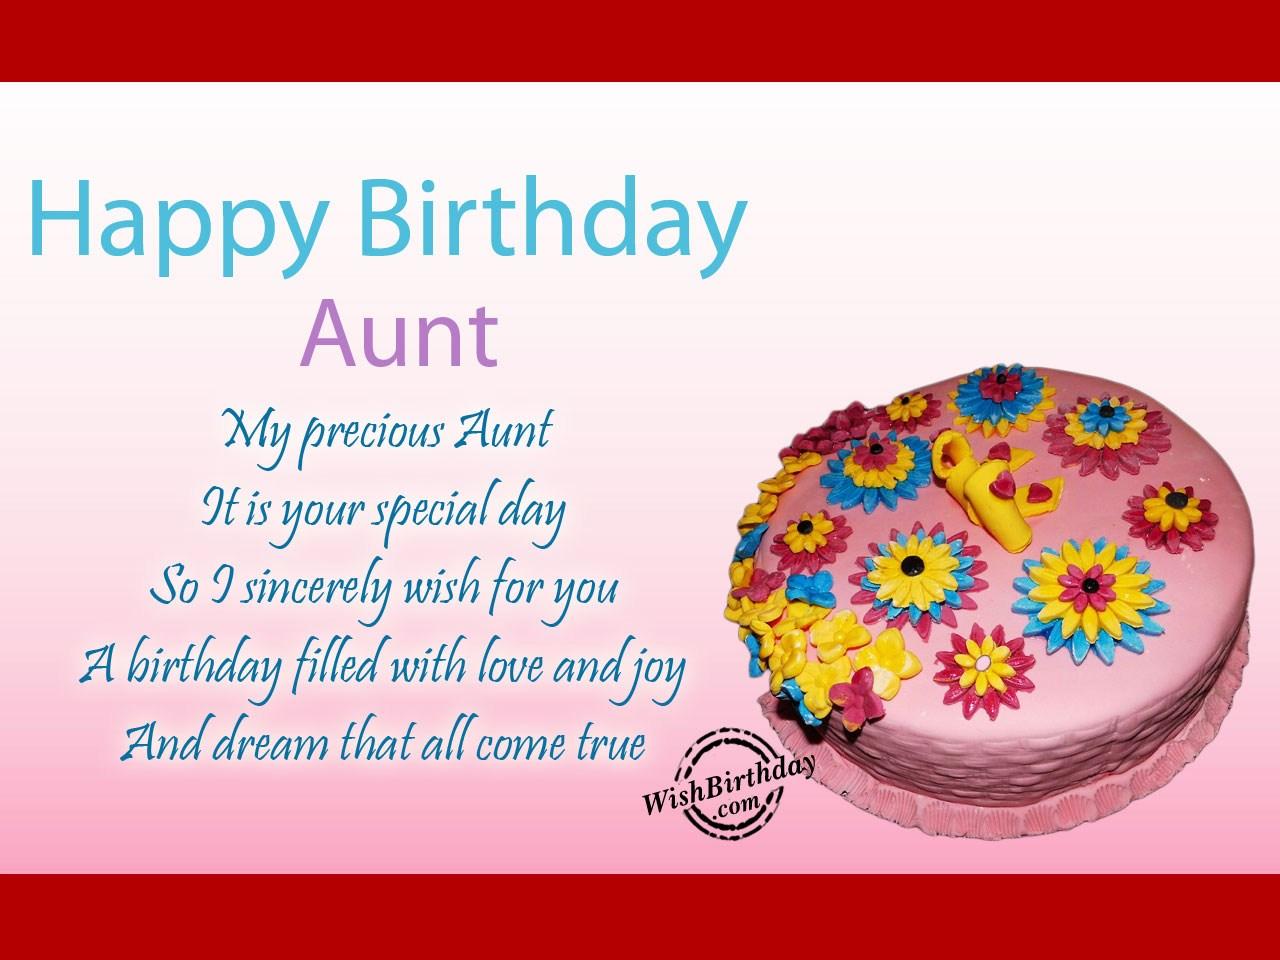 My precious aunt it is your special day wishbirthday my precious aunt it is your special day kristyandbryce Choice Image